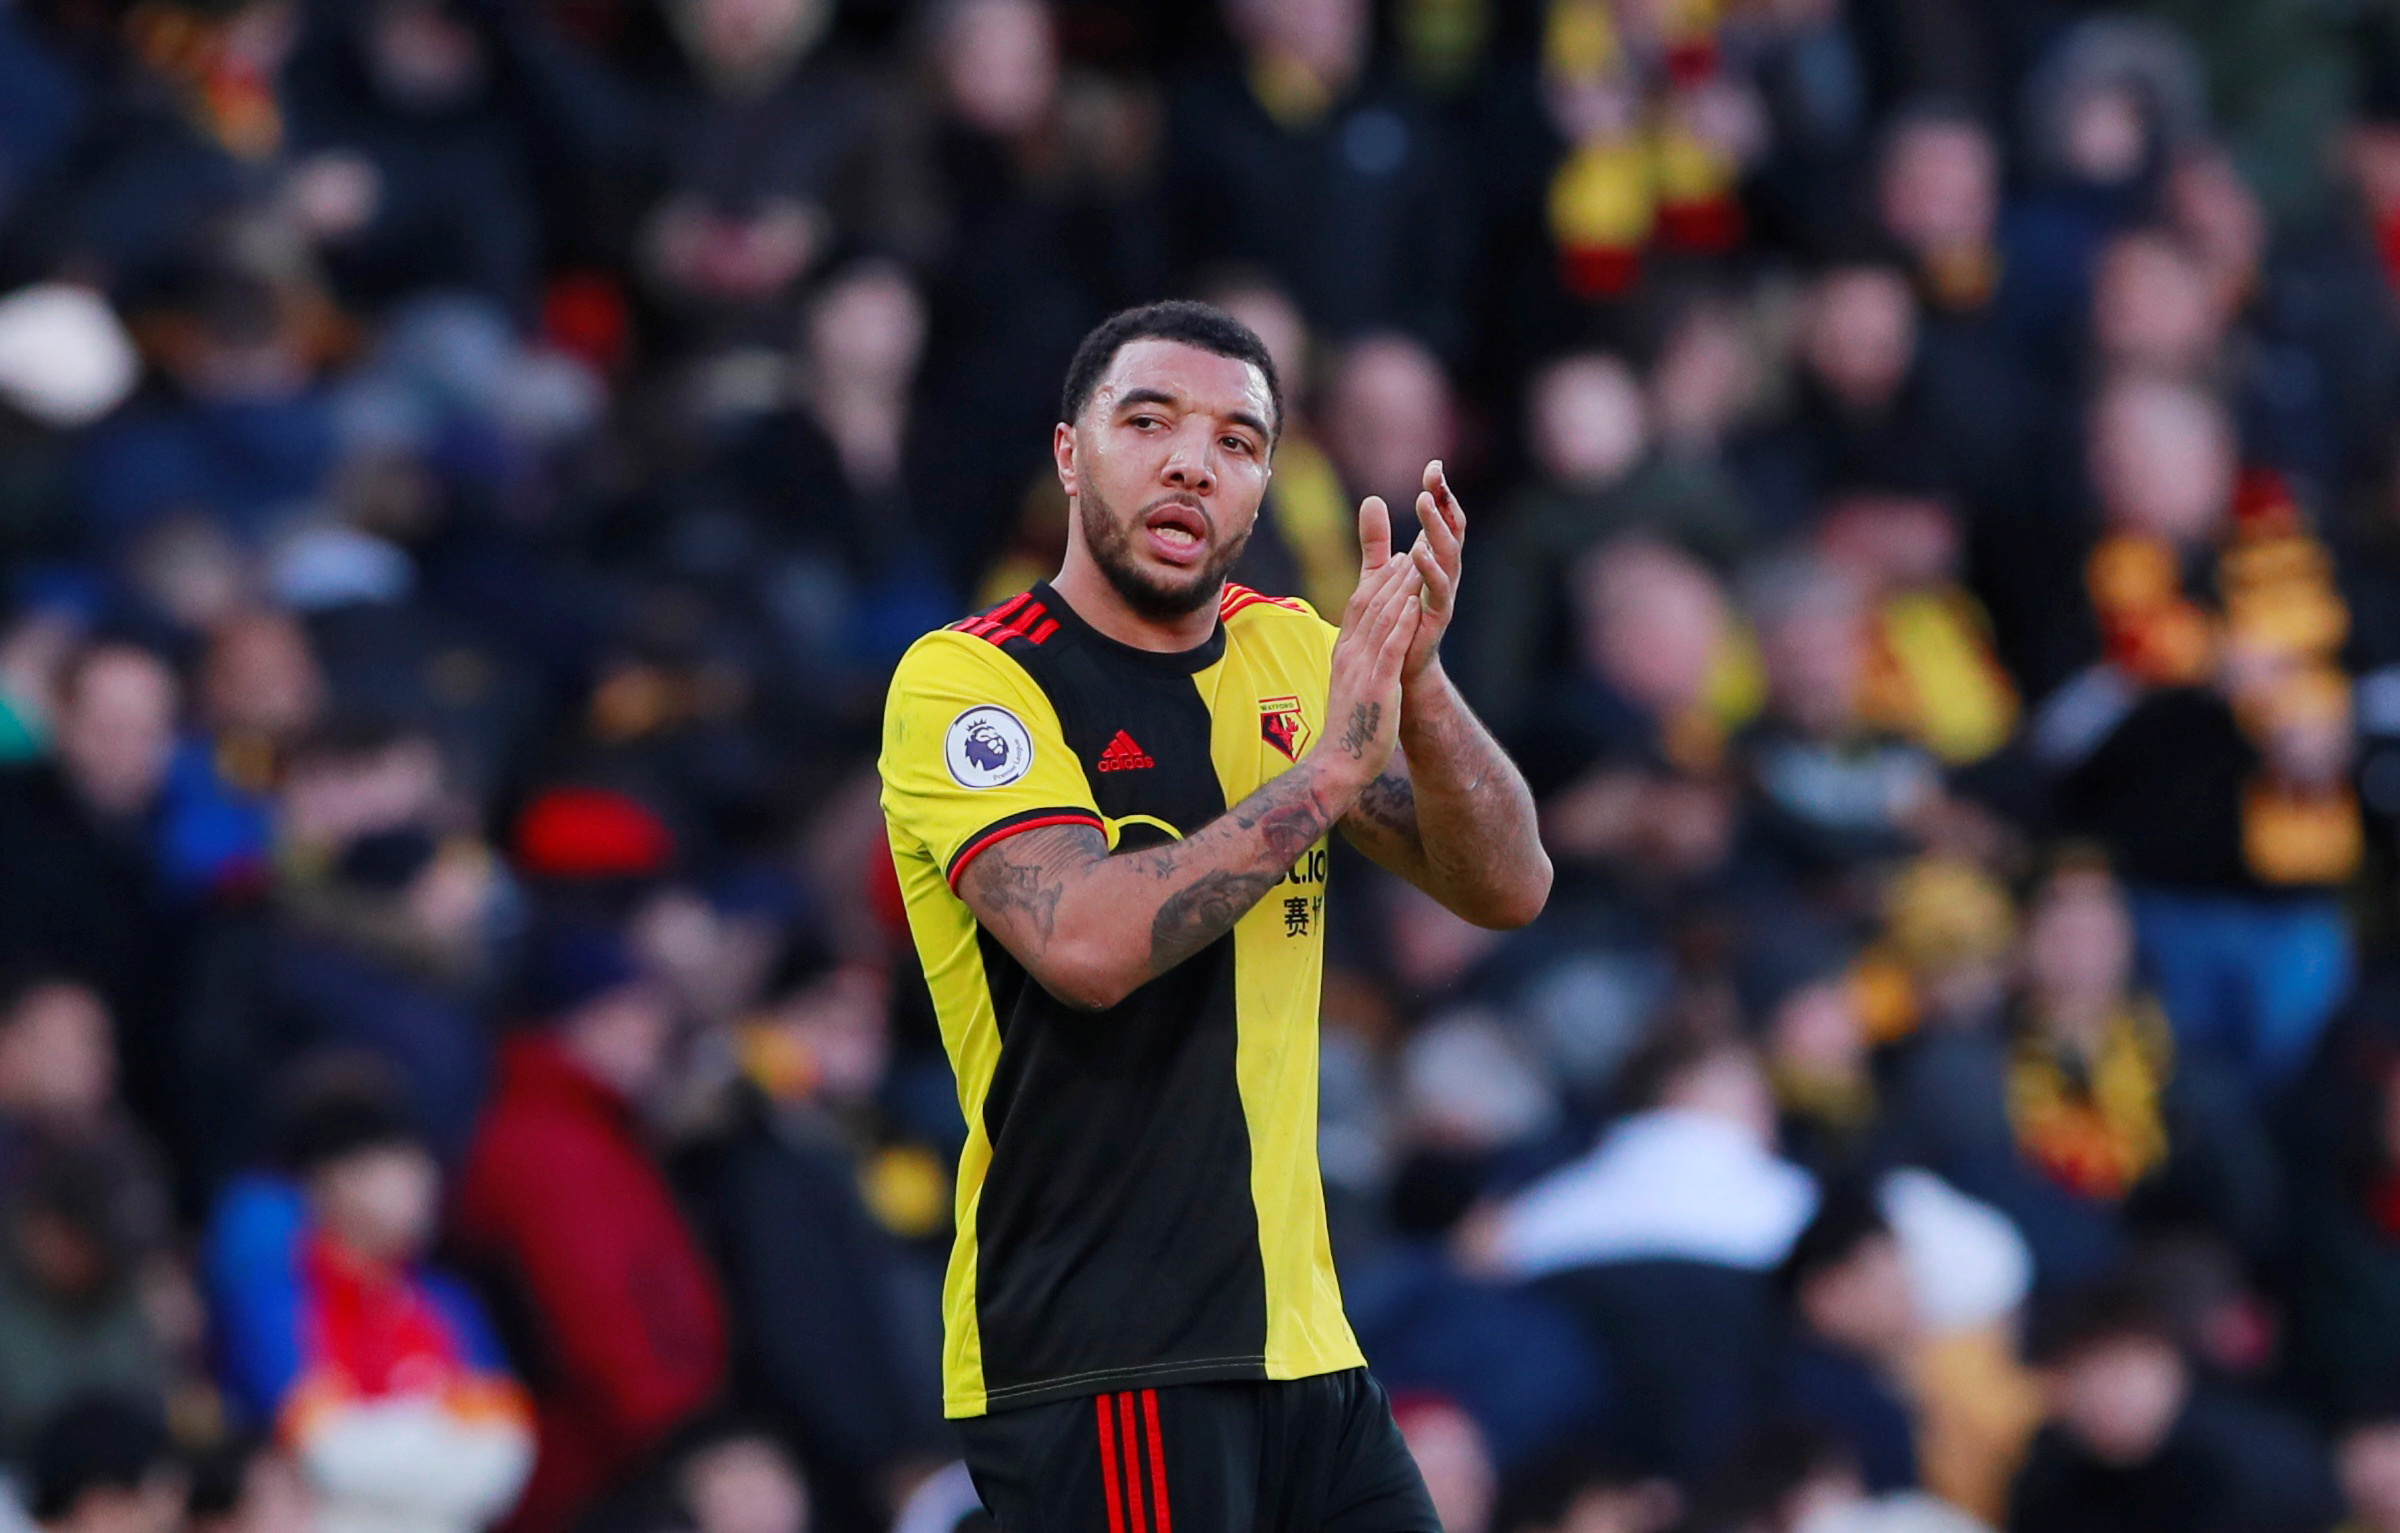 Watford captain Troy Deeney received abuse online due to his coronavirus concerns